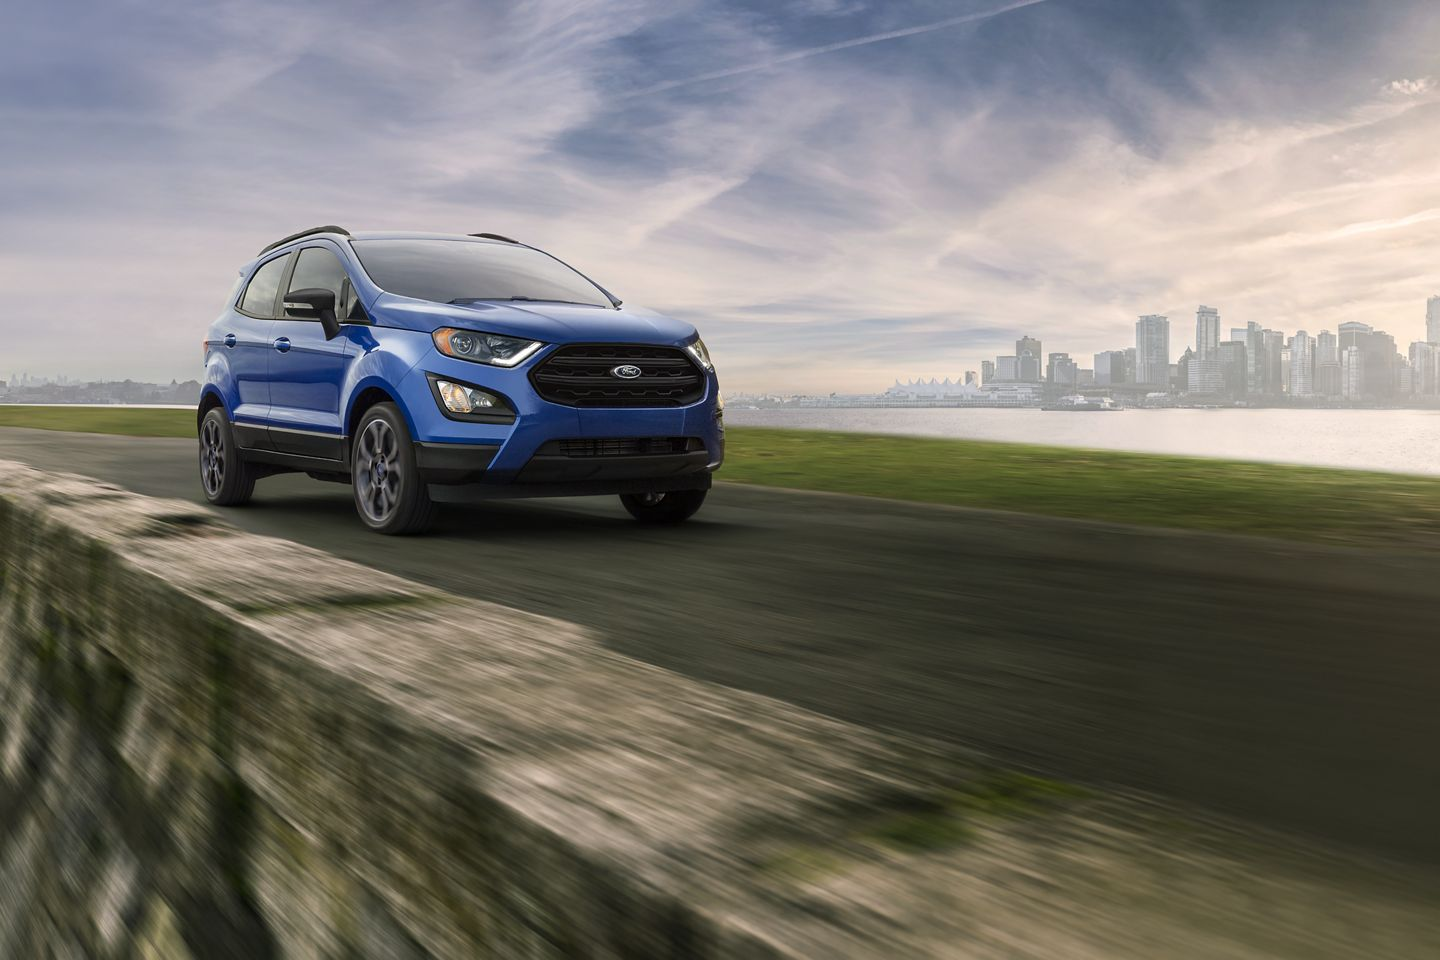 2019 Ford EcoSport for Sale near Dallas, TX